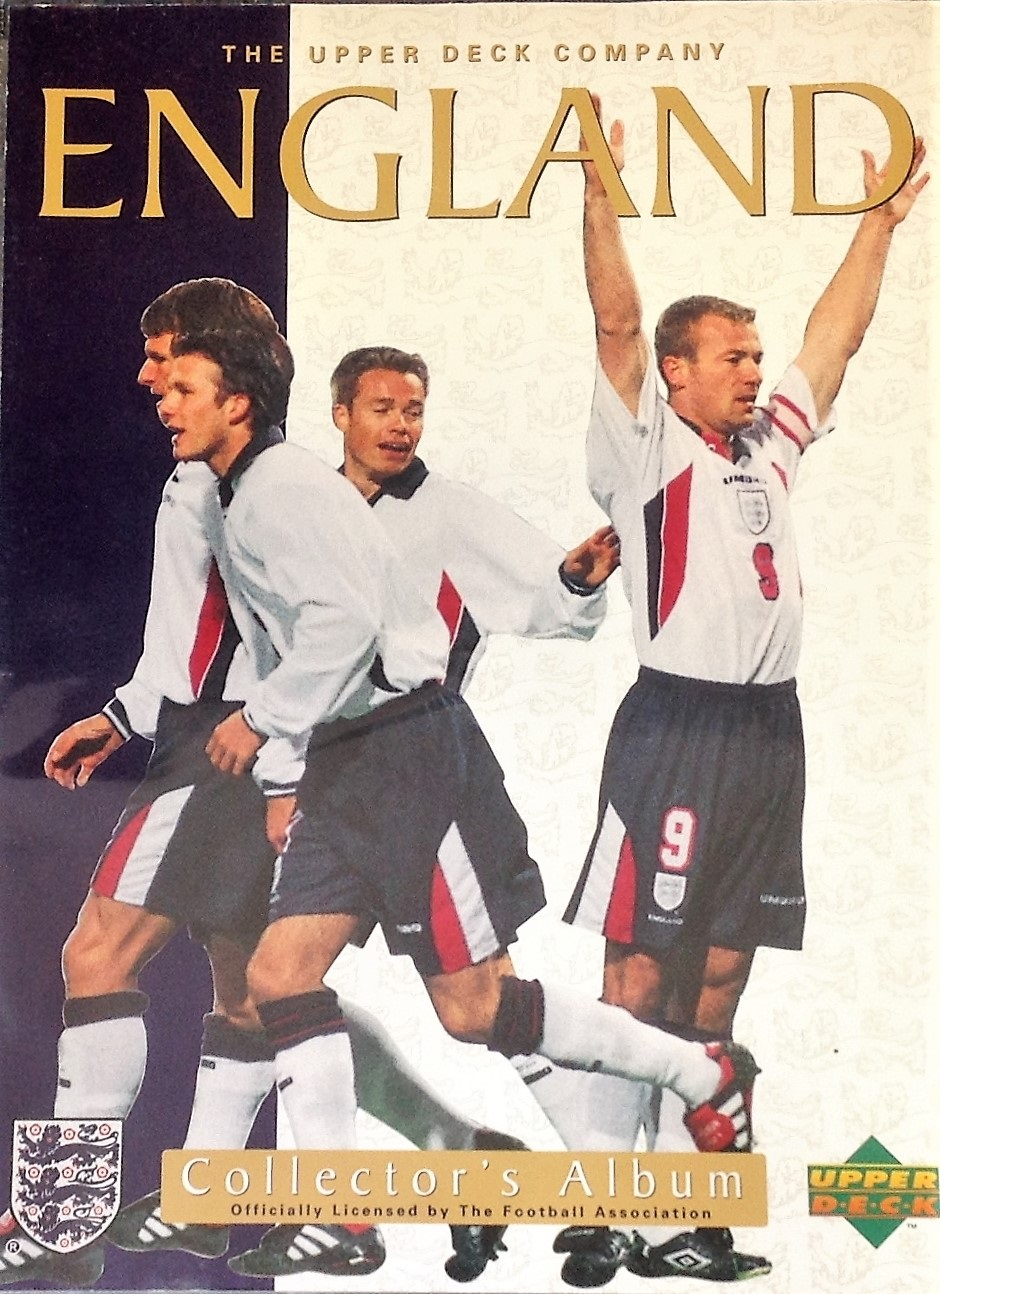 Lot 22 - Football collection England F. A collectors album 81 fantastic cards of England legends and historic